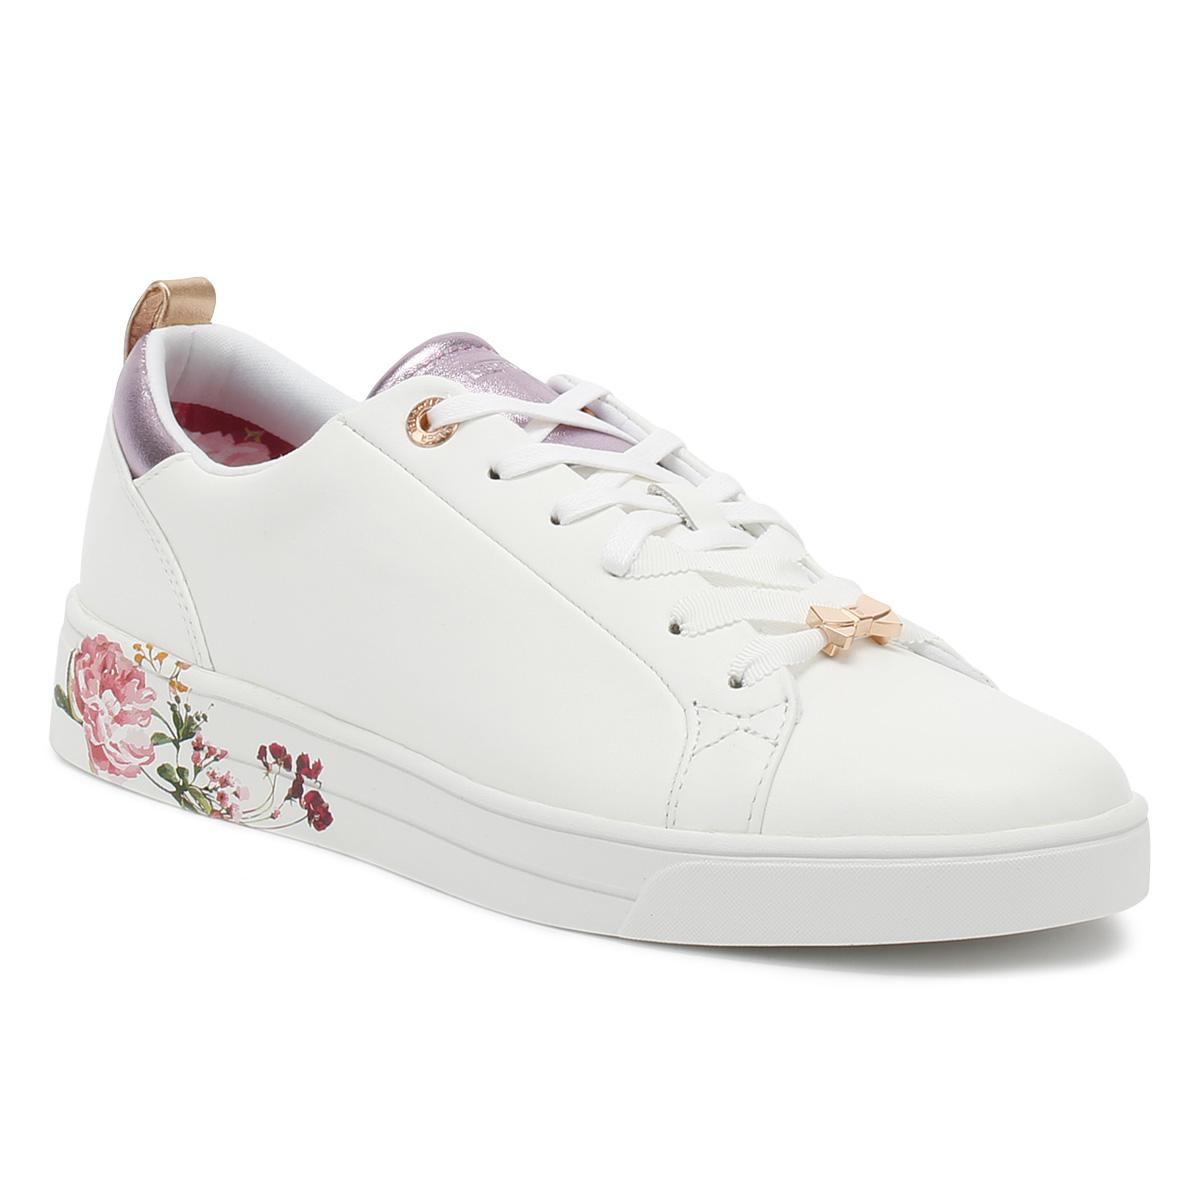 cad4fb0fda26 Ted Baker Womens White   Serenity Giellip Trainers in White - Lyst